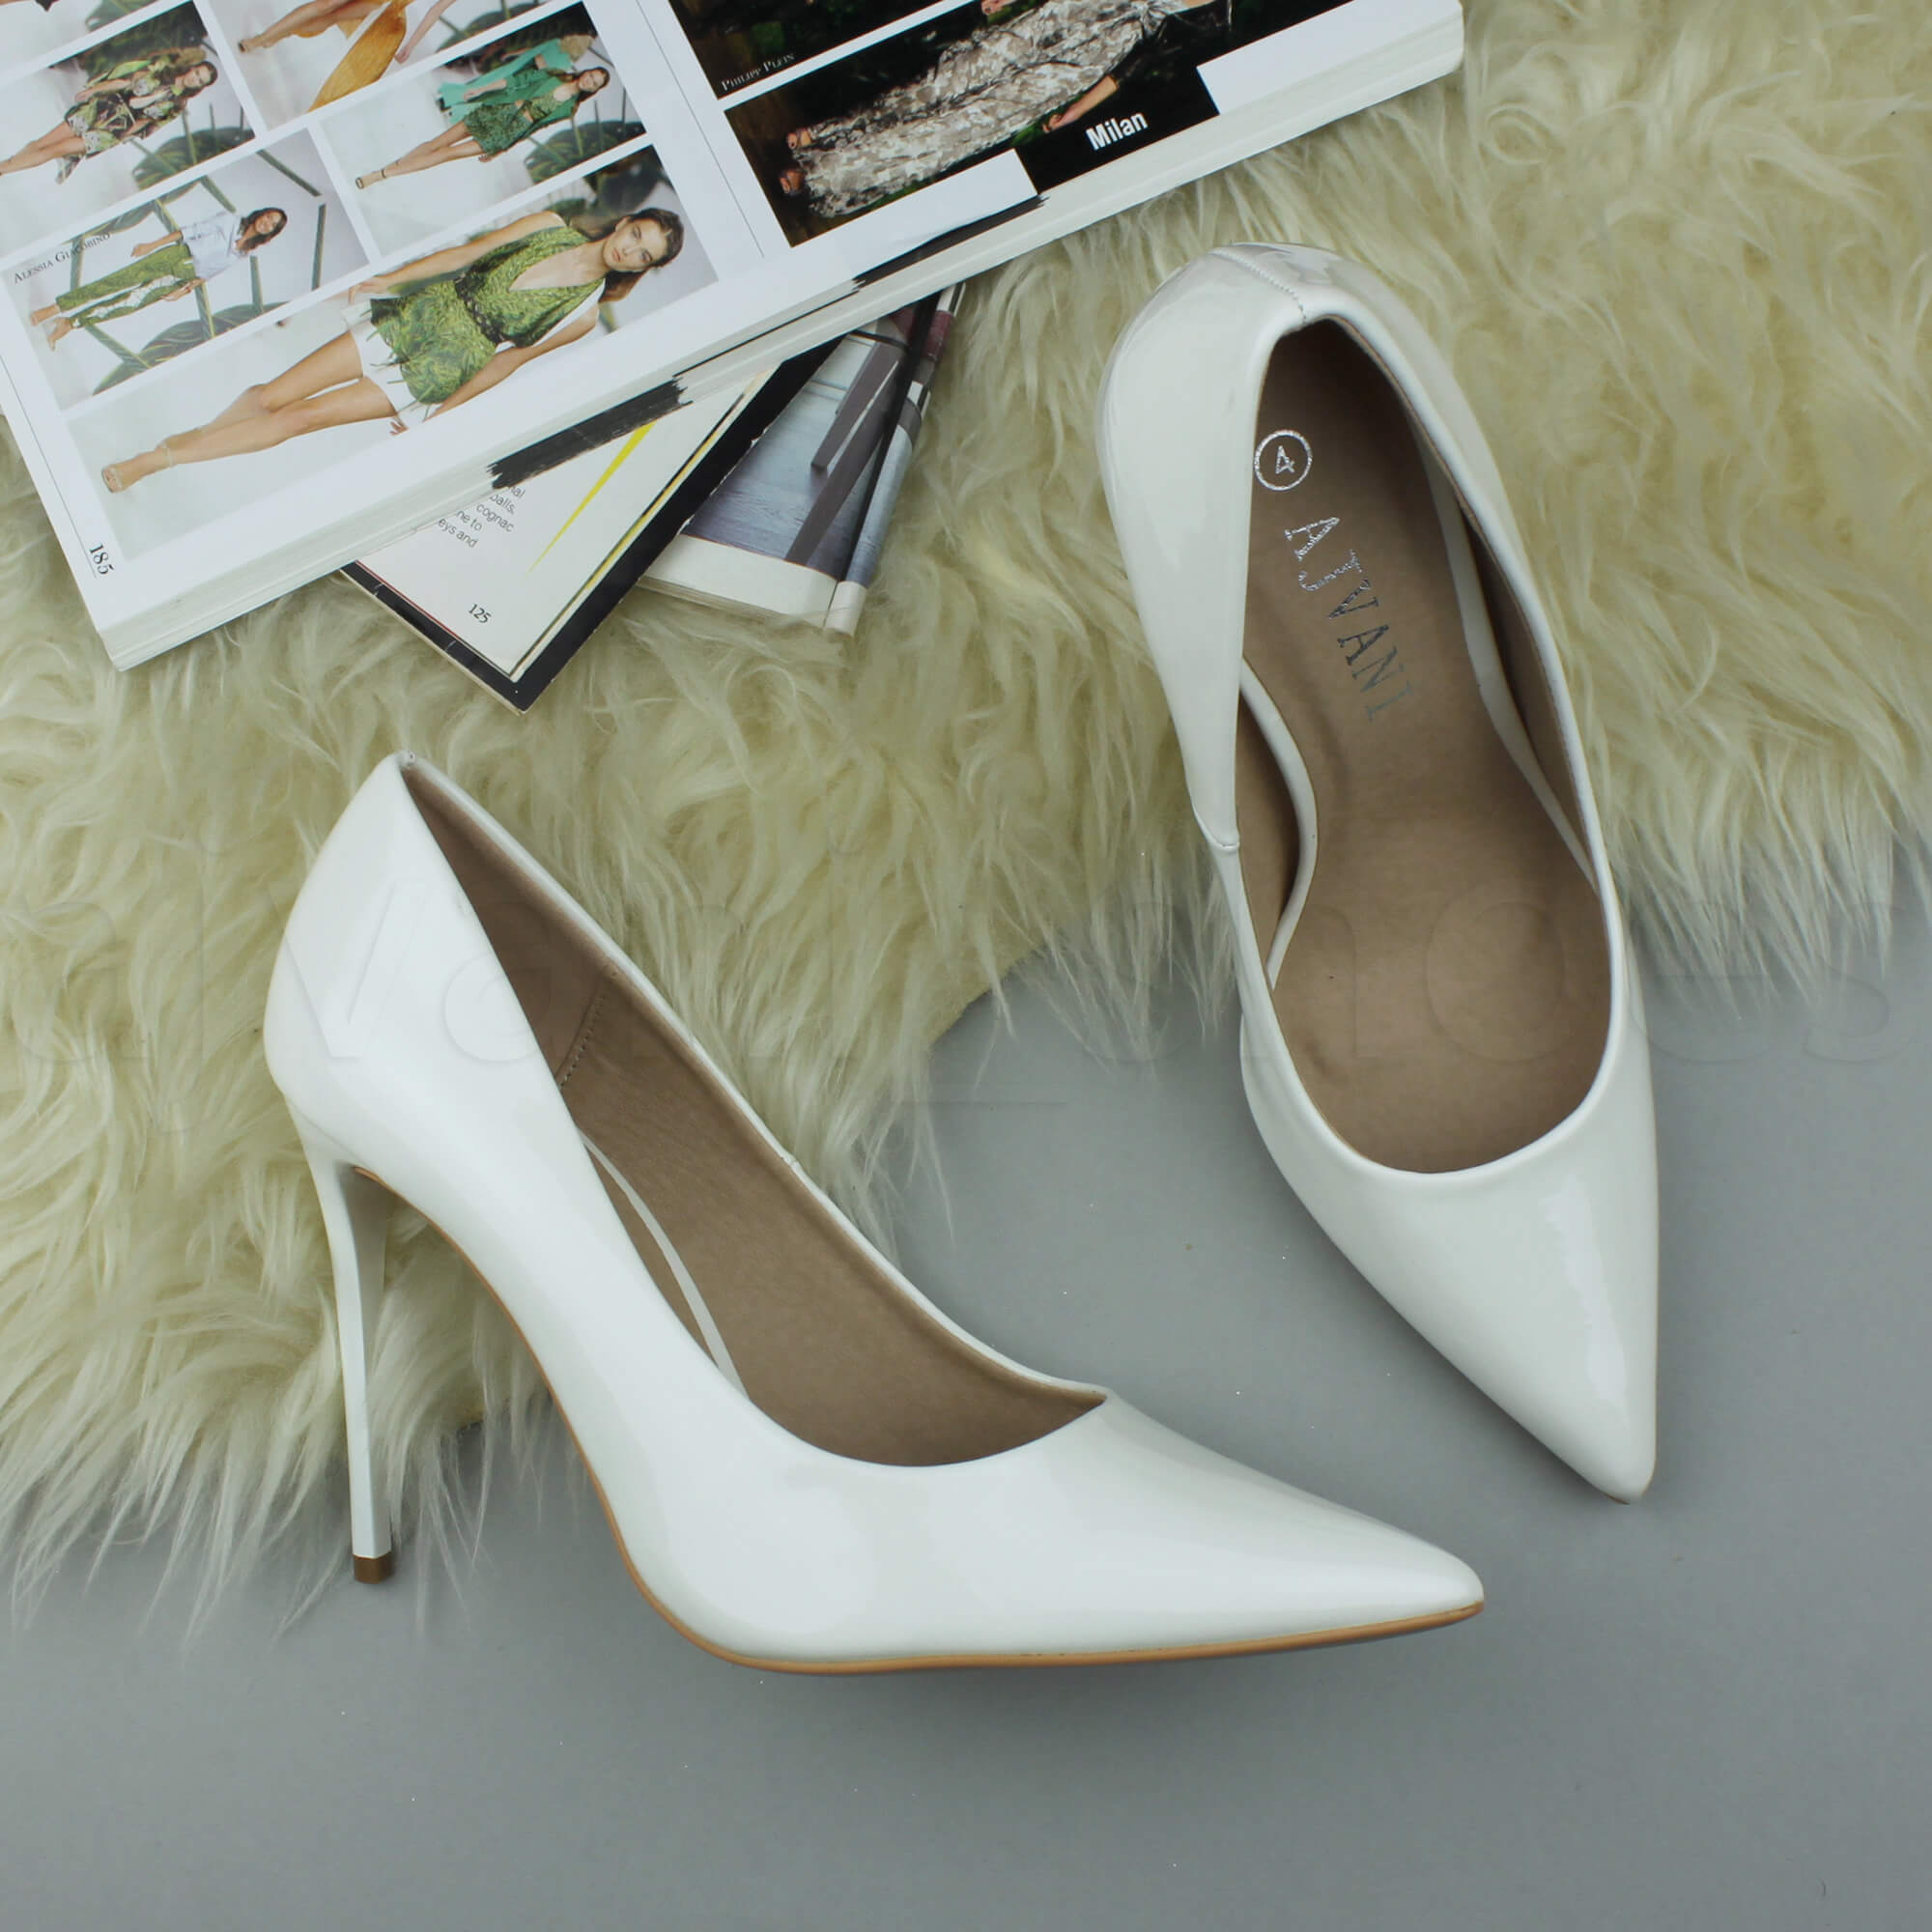 WOMENS-LADIES-HIGH-HEEL-POINTED-CONTRAST-COURT-SMART-PARTY-WORK-SHOES-PUMPS-SIZE thumbnail 226